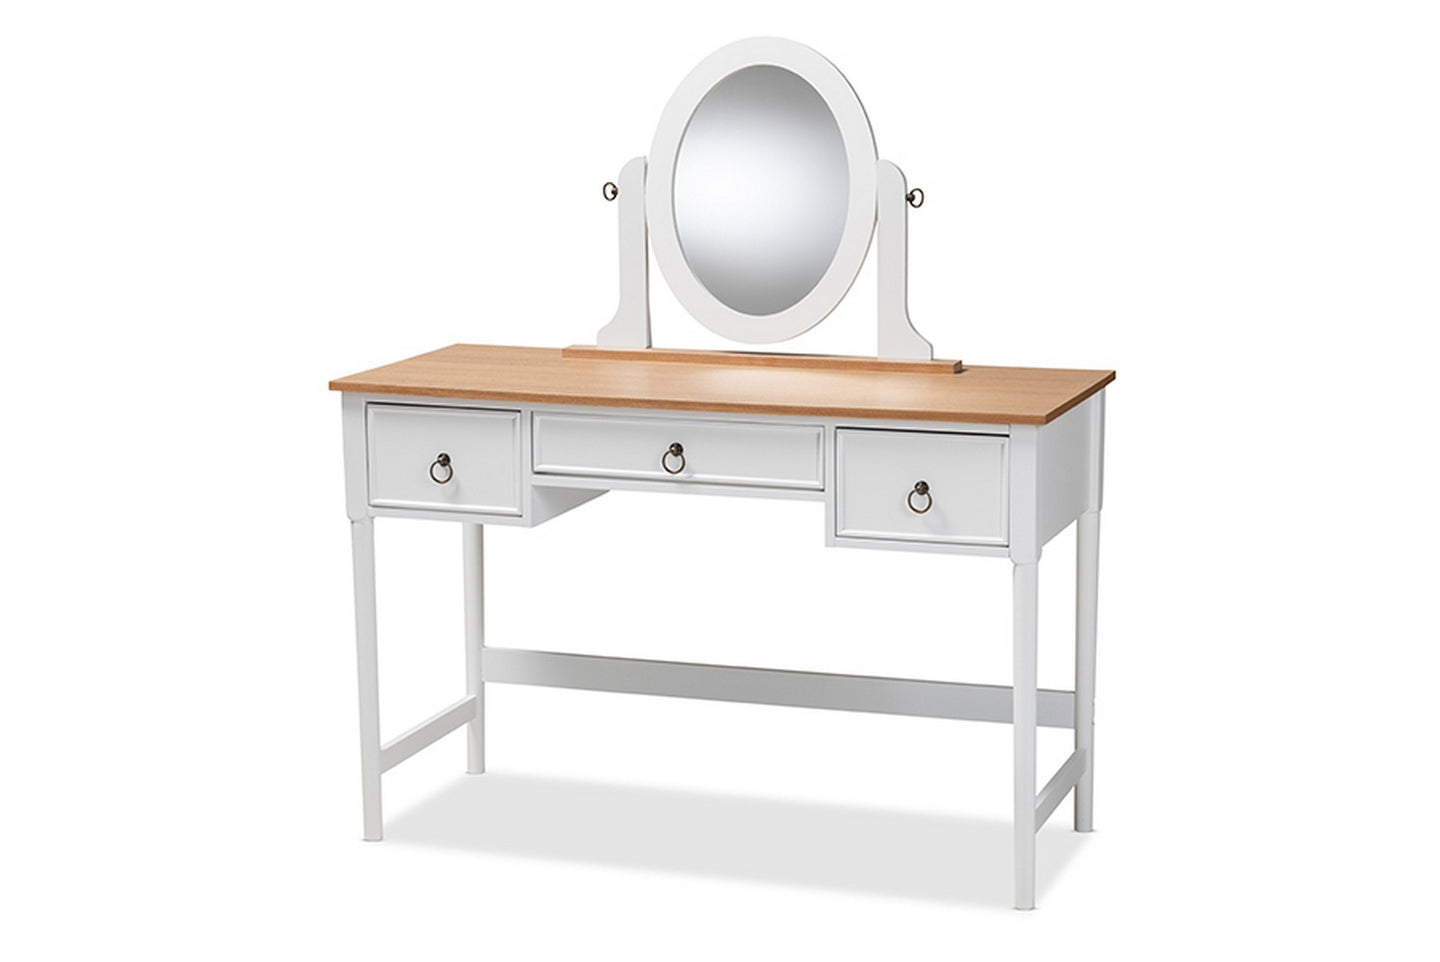 Baxton Studio Sylvie Classic and Traditional White 3-Drawer Wood Vanity Table with Mirror Baxton Studio-Armoires-Minimal And Modern - 1